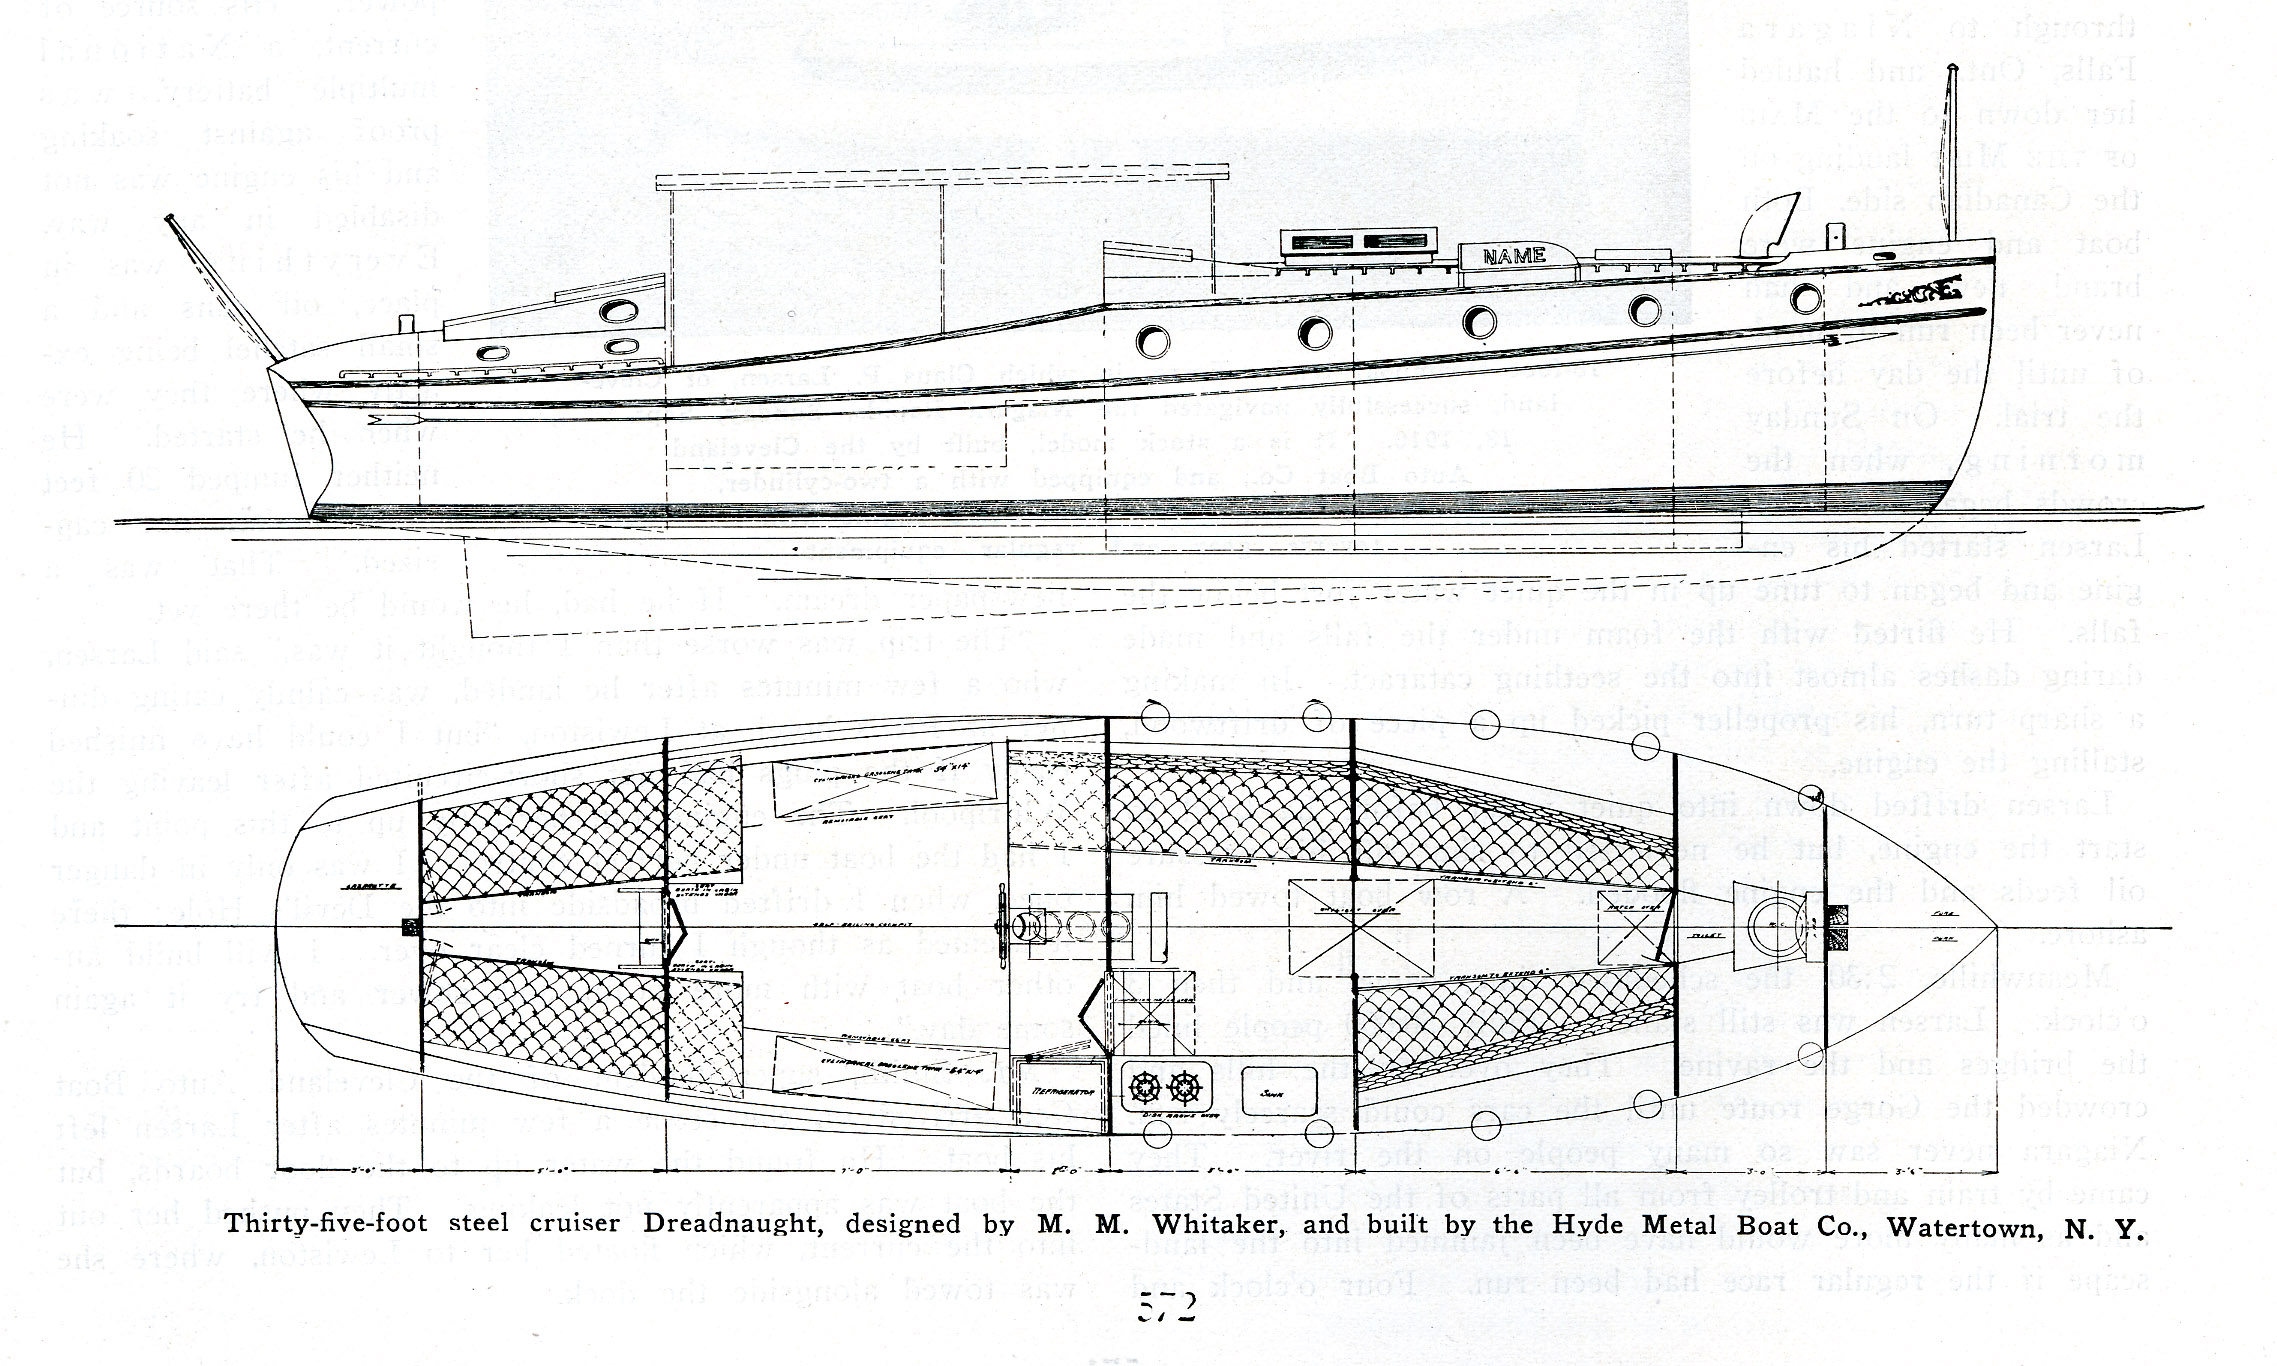 Profile and plan of  Dreadnaught